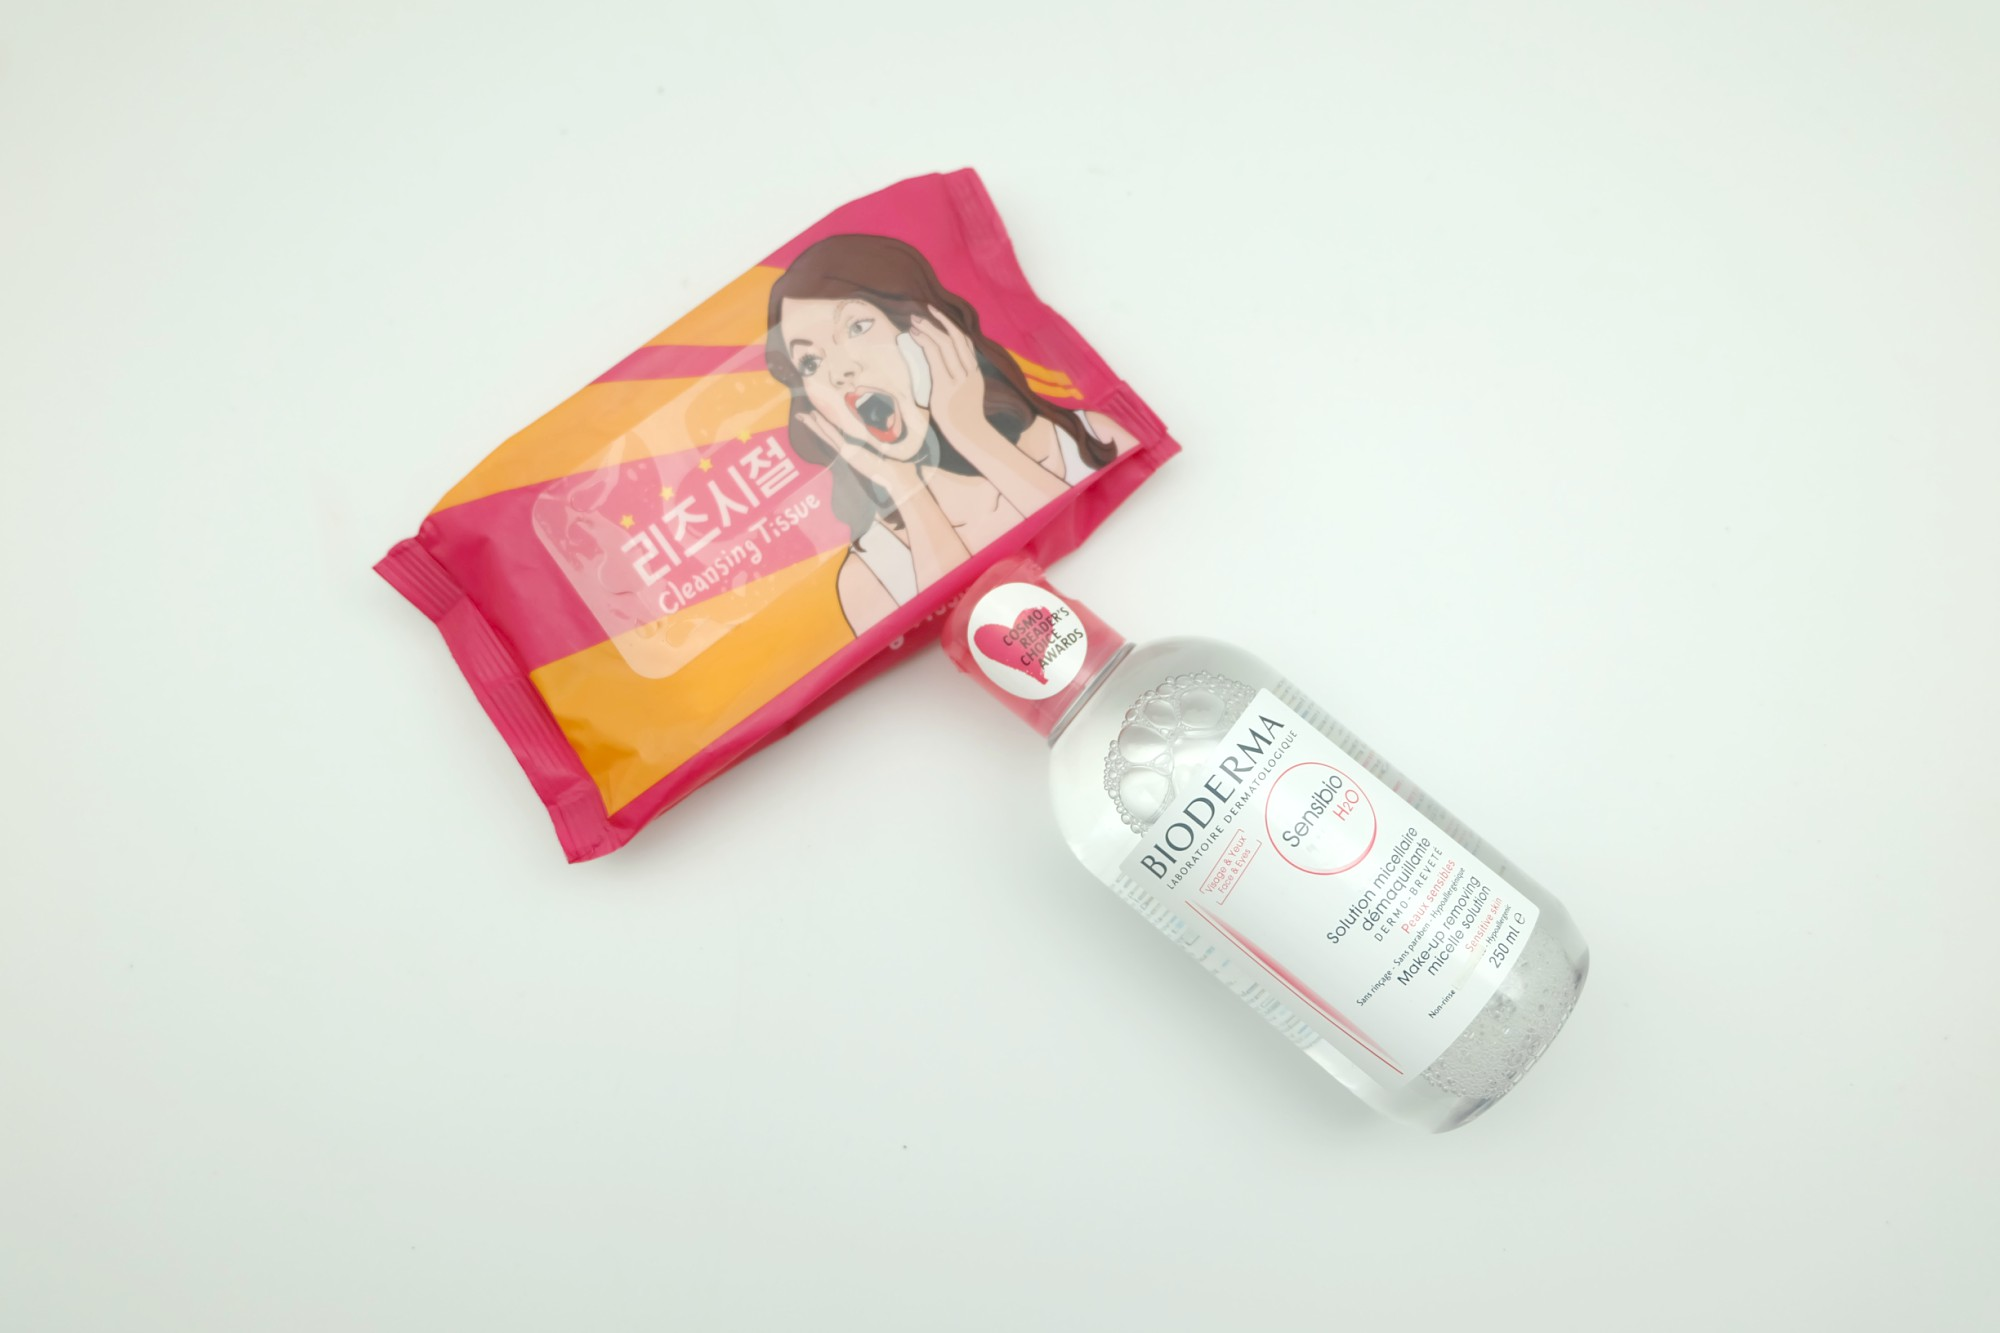 Micellar water vs cleansing wipes